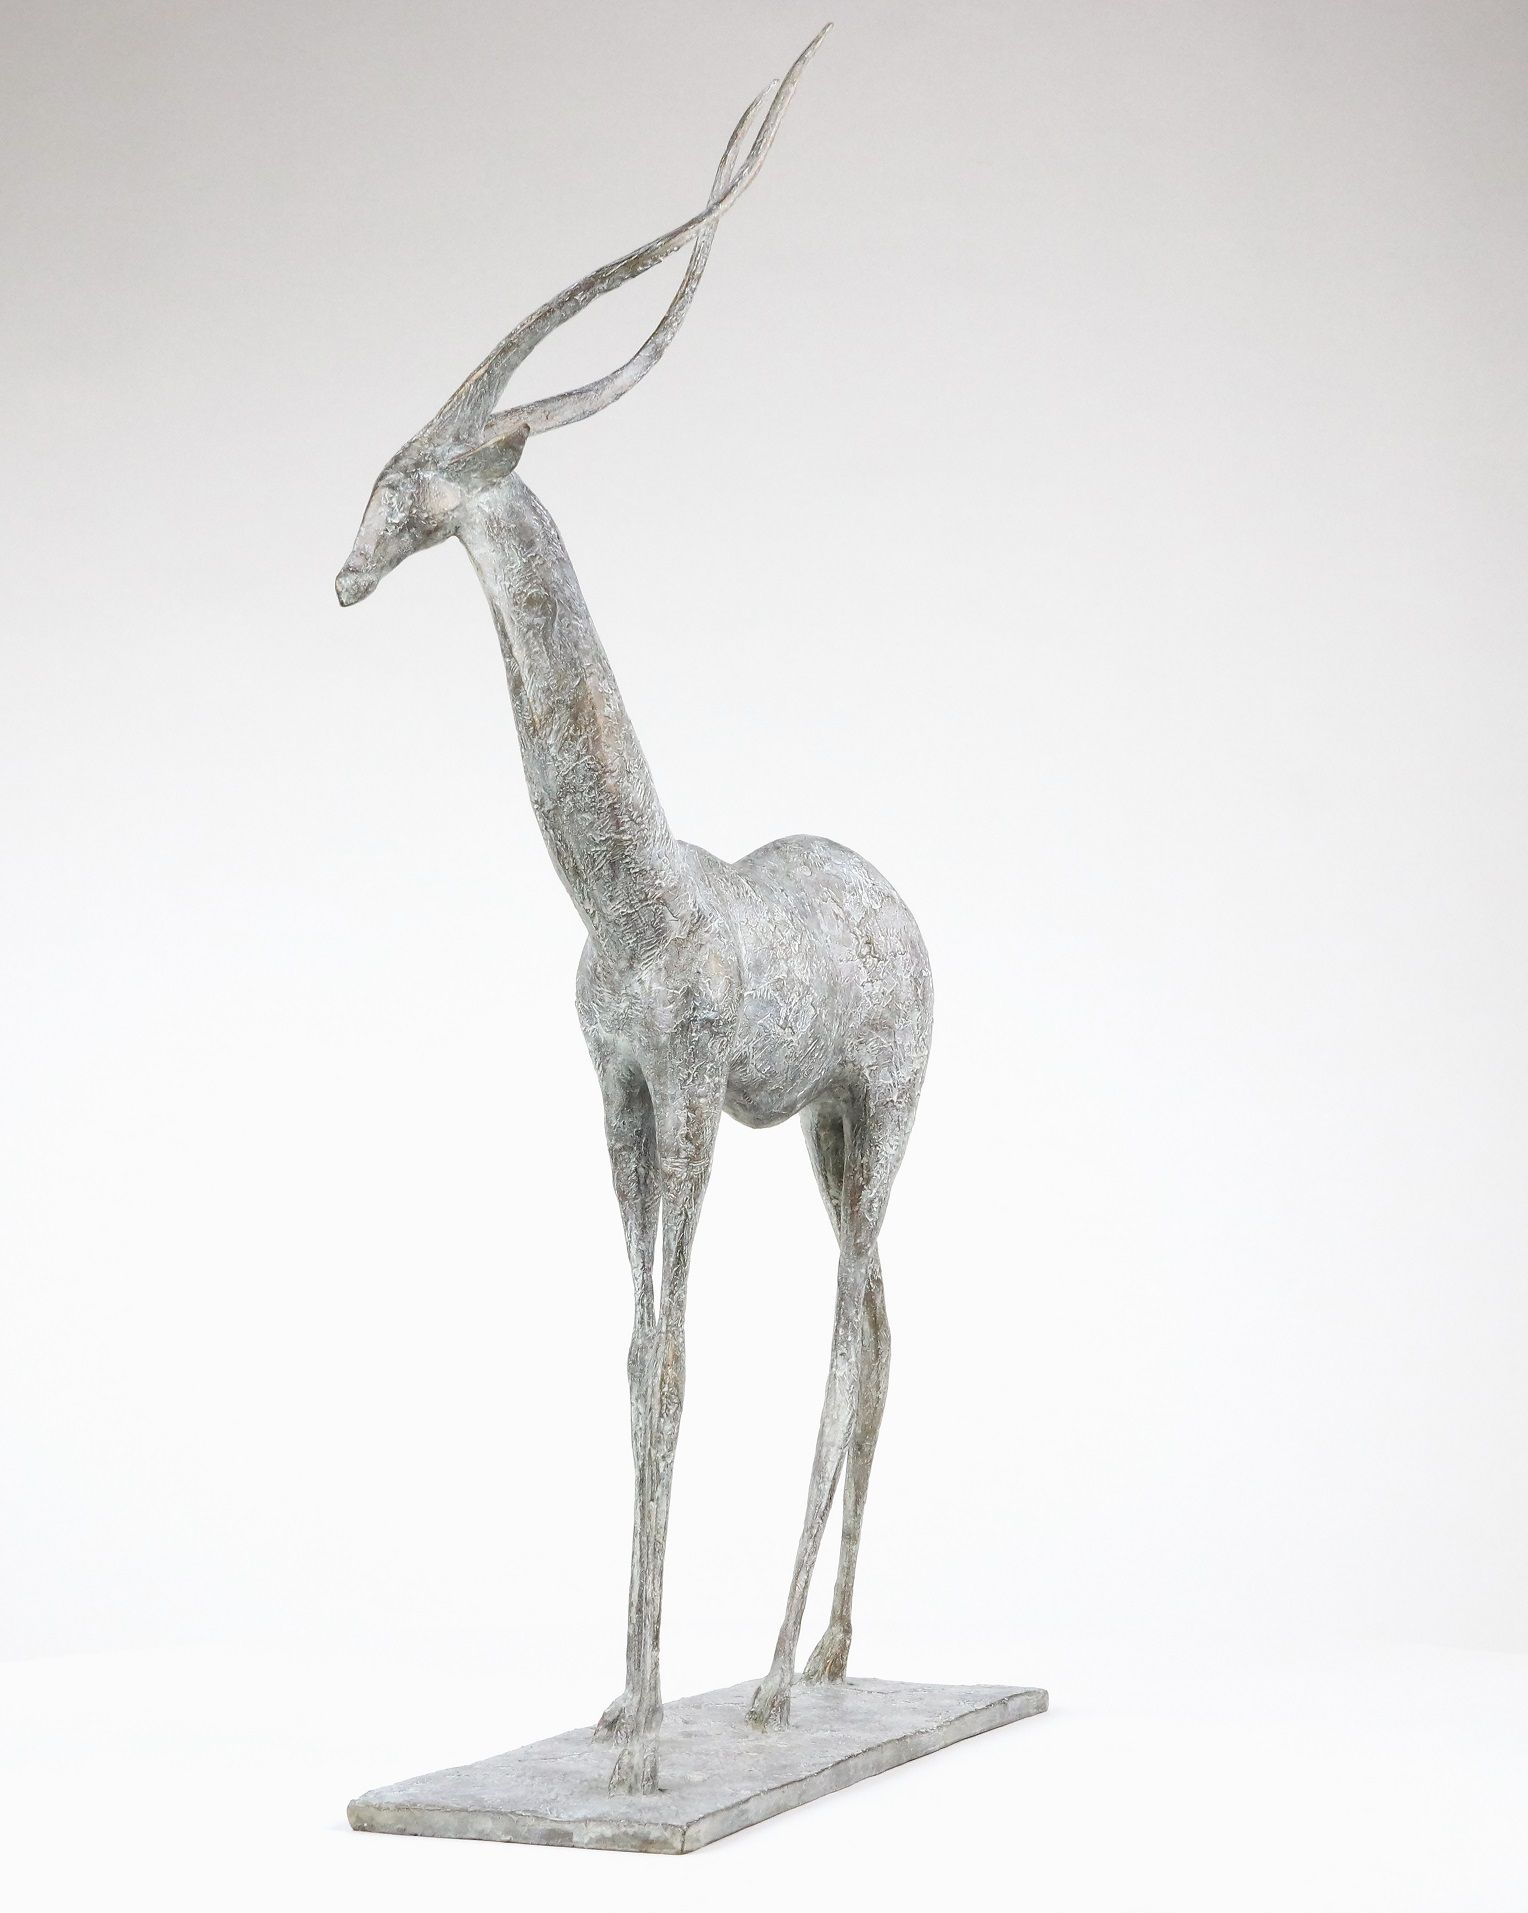 Gazelle I, Pierre Yermia,Sculpture contemporaine, detail 4